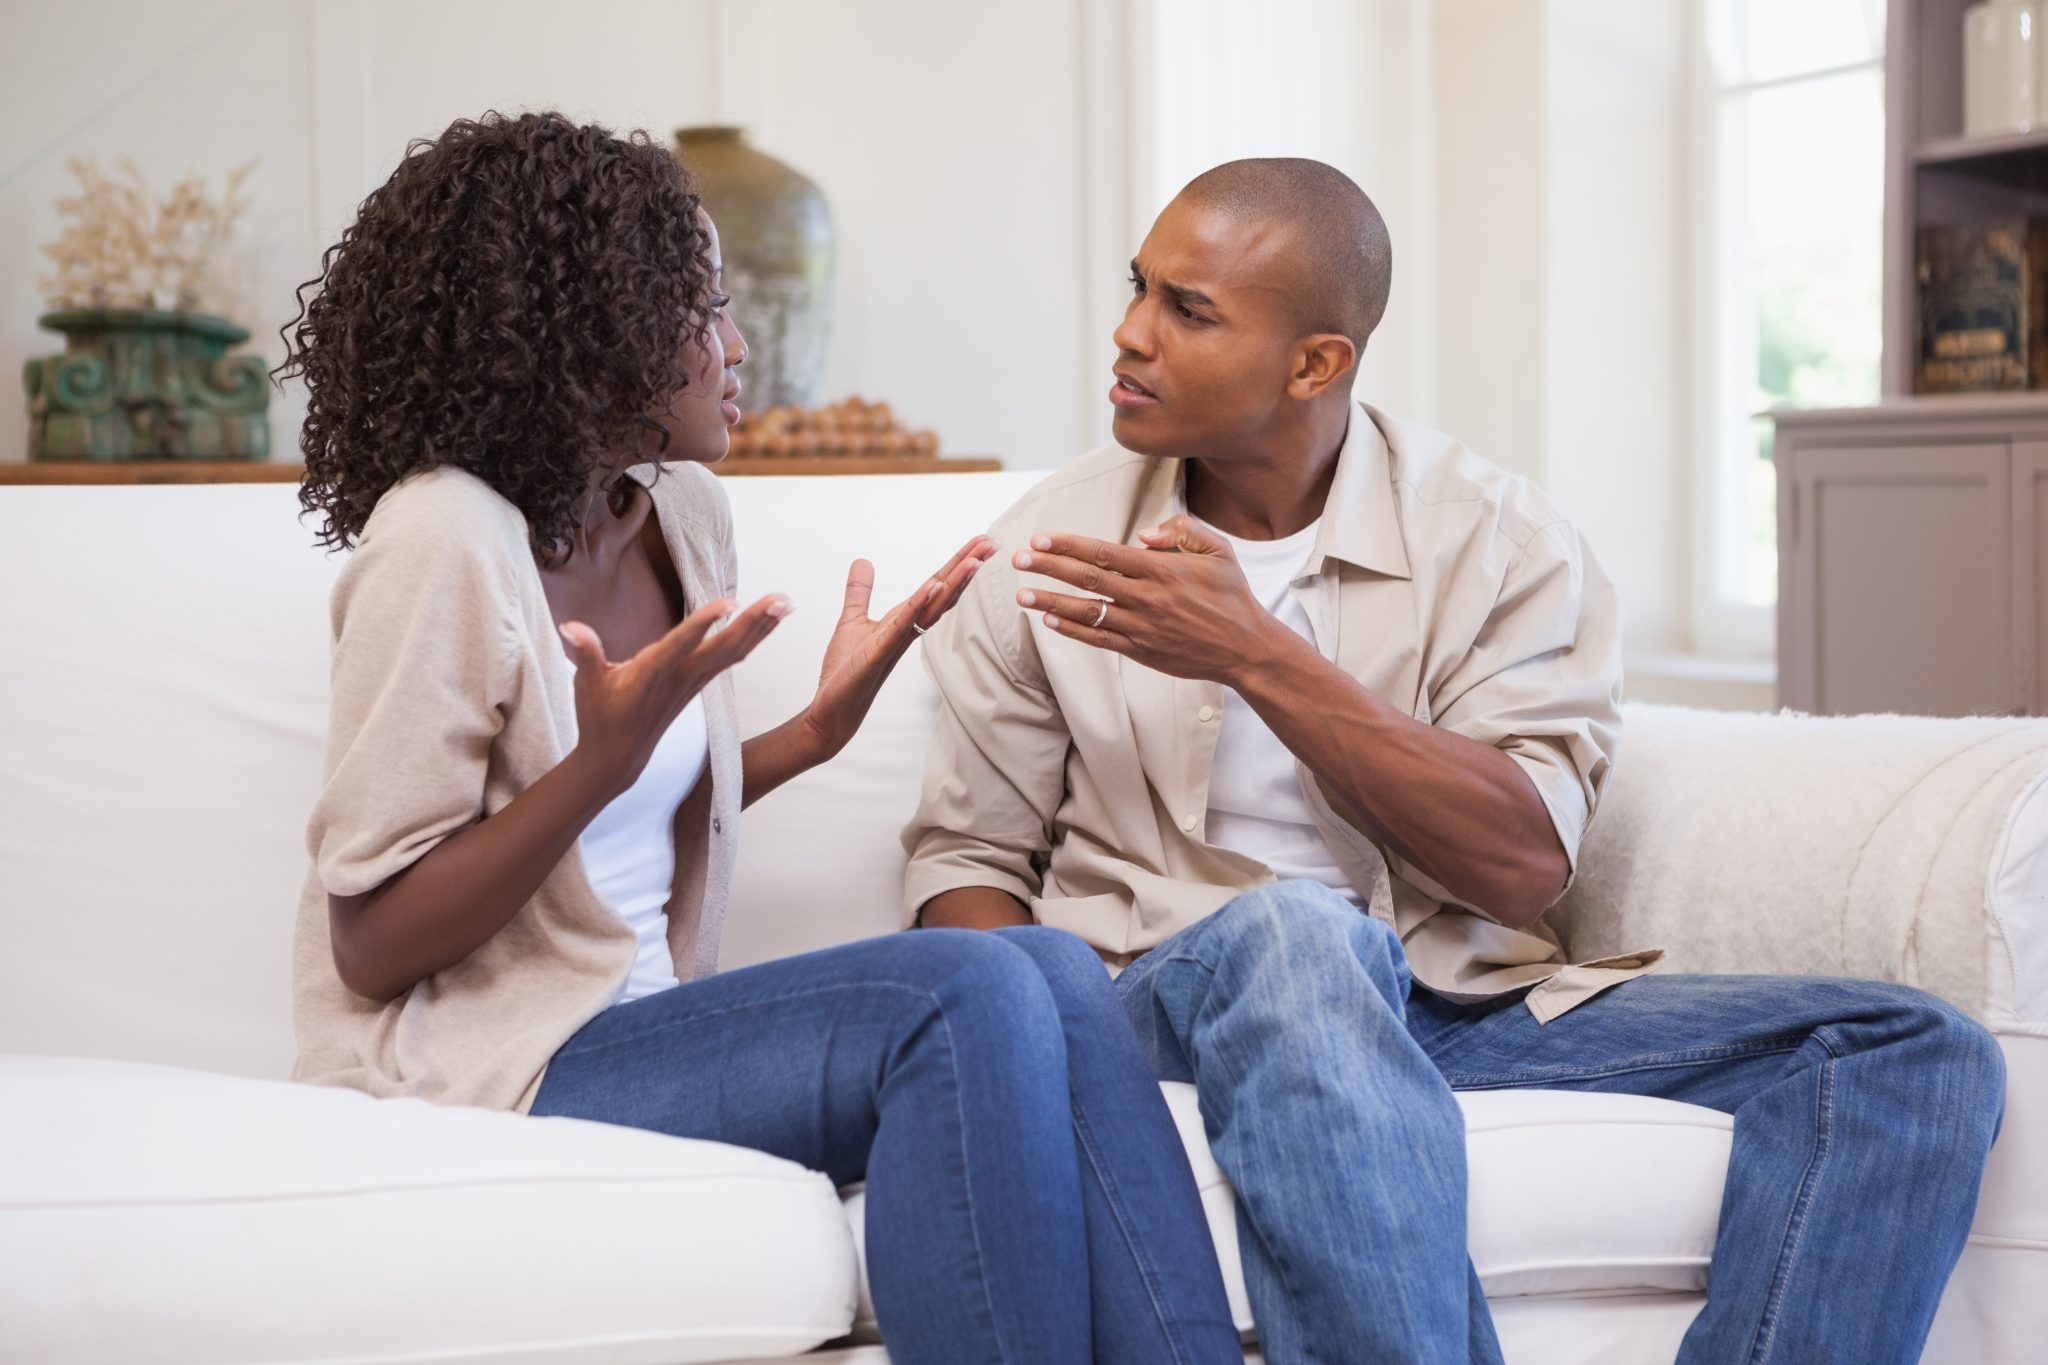 People who struggle to apologize, keep their relationships stuck